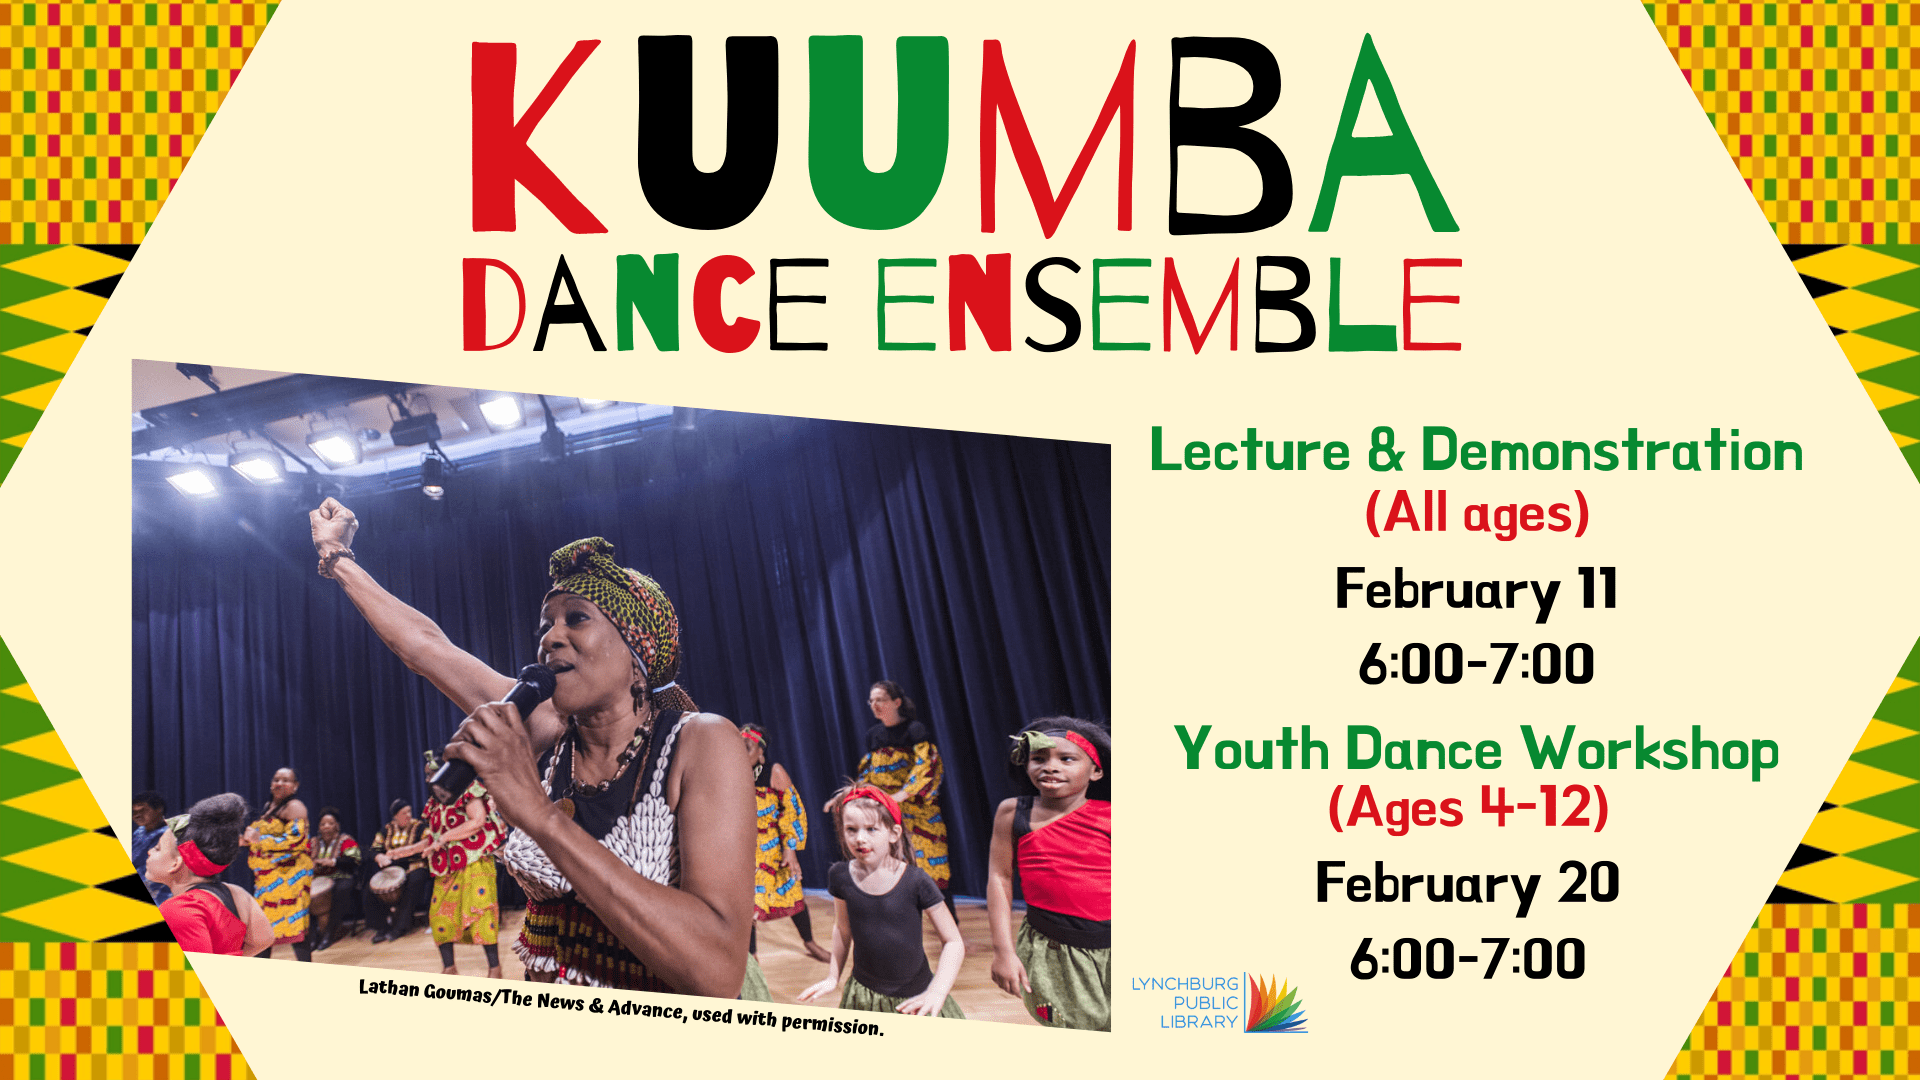 Kuumba Dance Ensemble-Children's Workshop @ Community Meeting Room